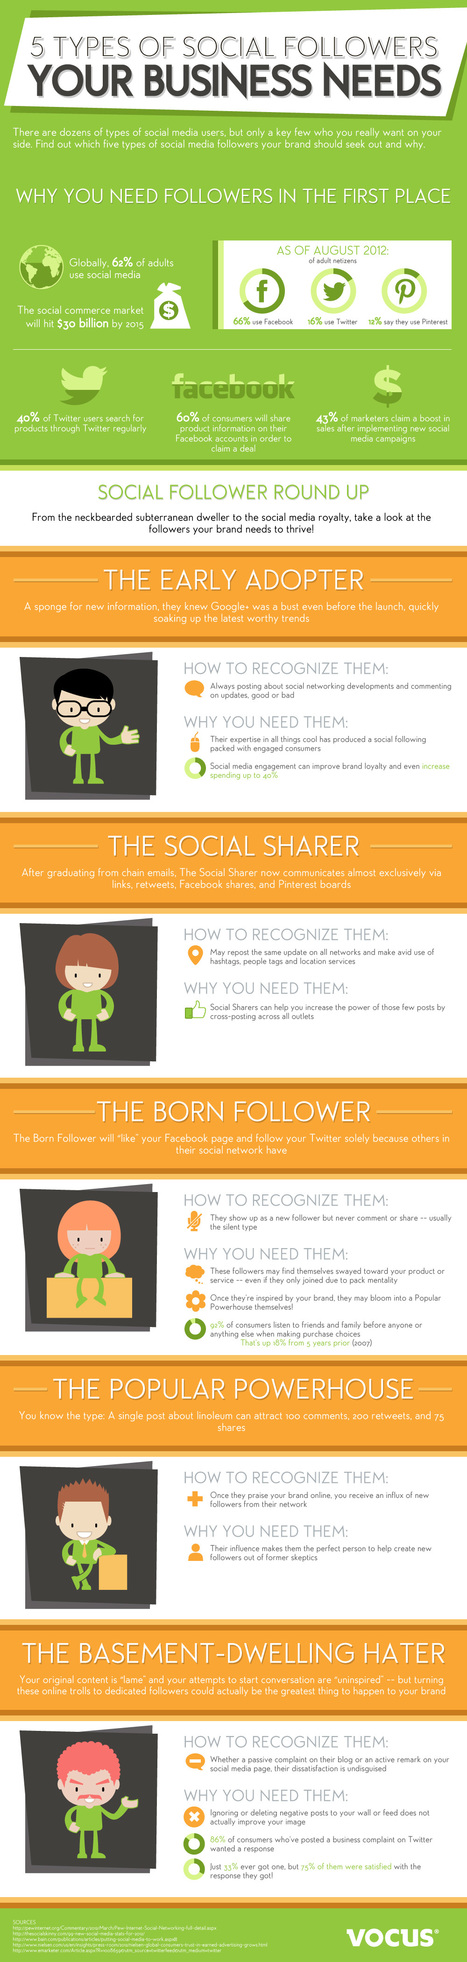 The 5 Types of Social Followers that Every Business Needs [INFOGRAPHIC] | SocialMediaDesign | Scoop.it